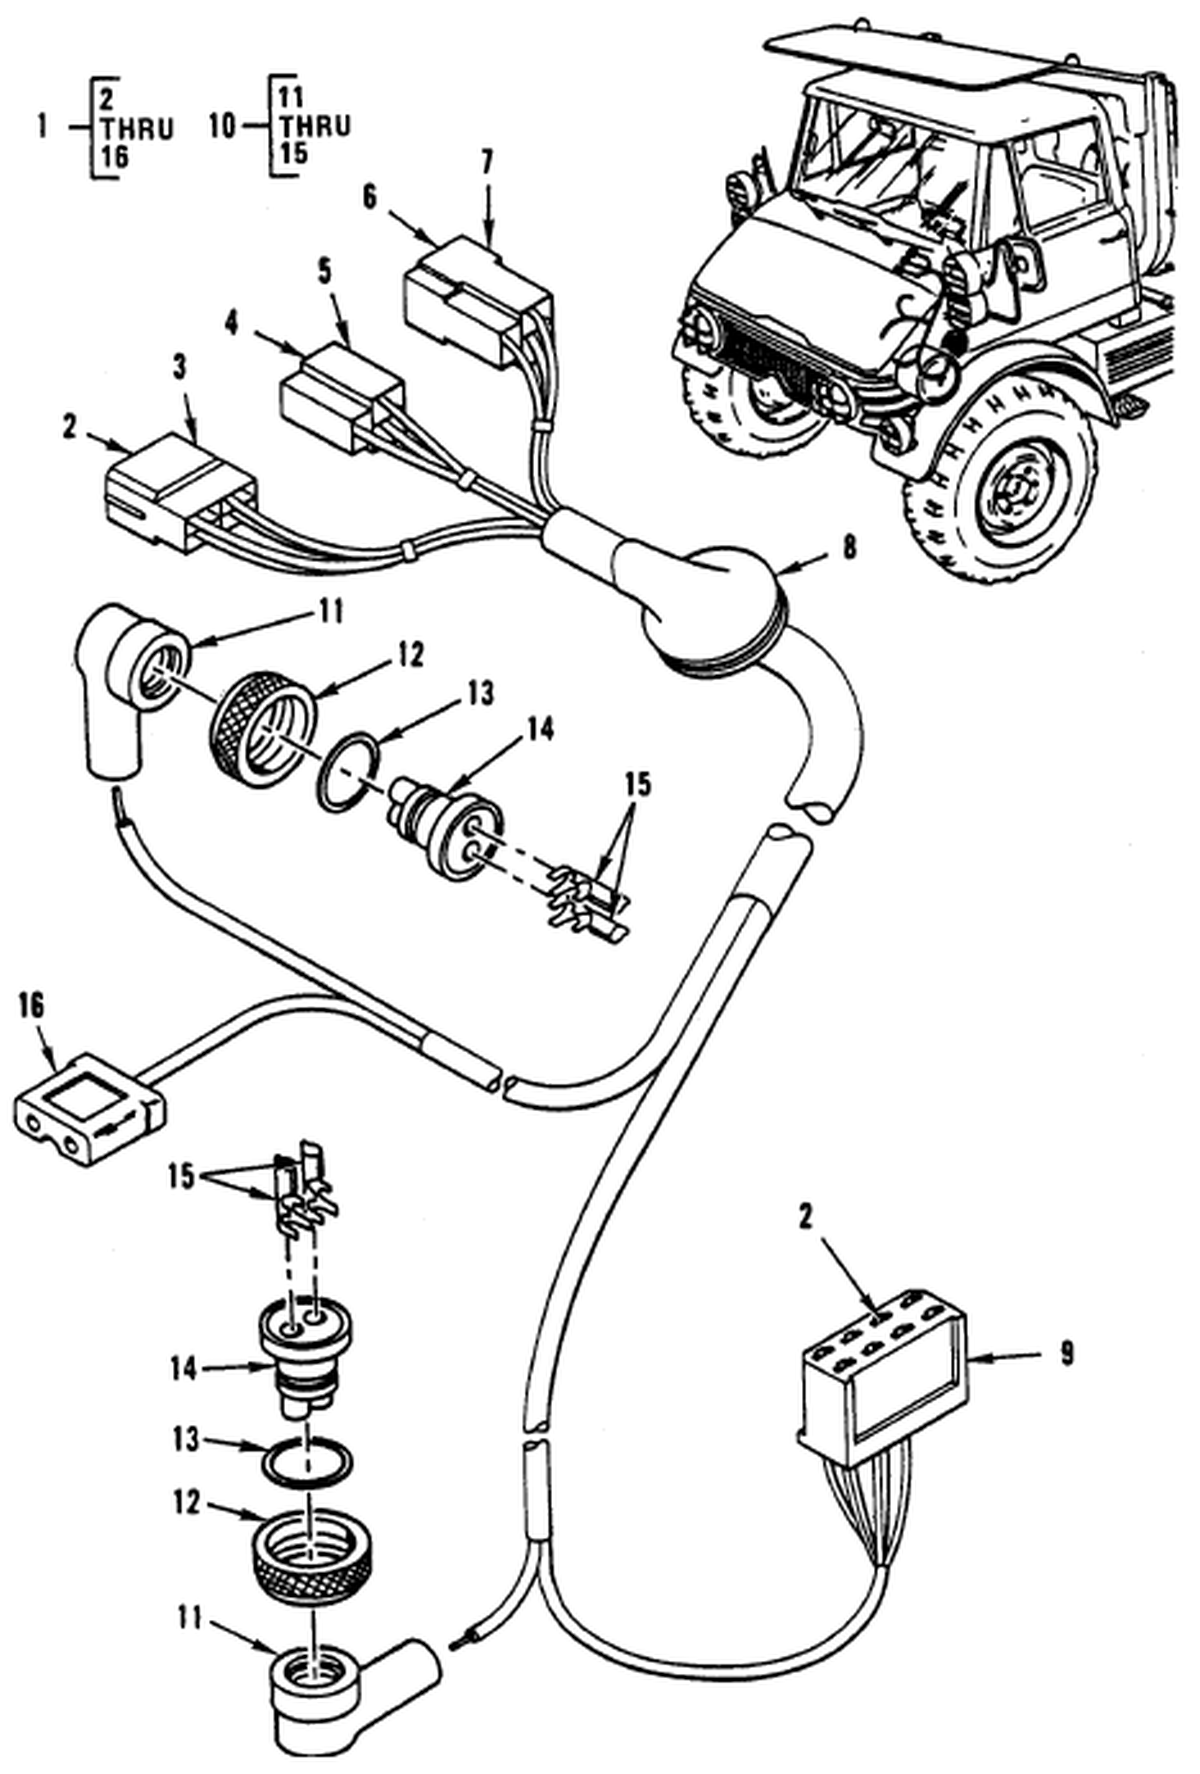 0091 00 2 Figure 90 Hull Or Chassis Wiring Harness